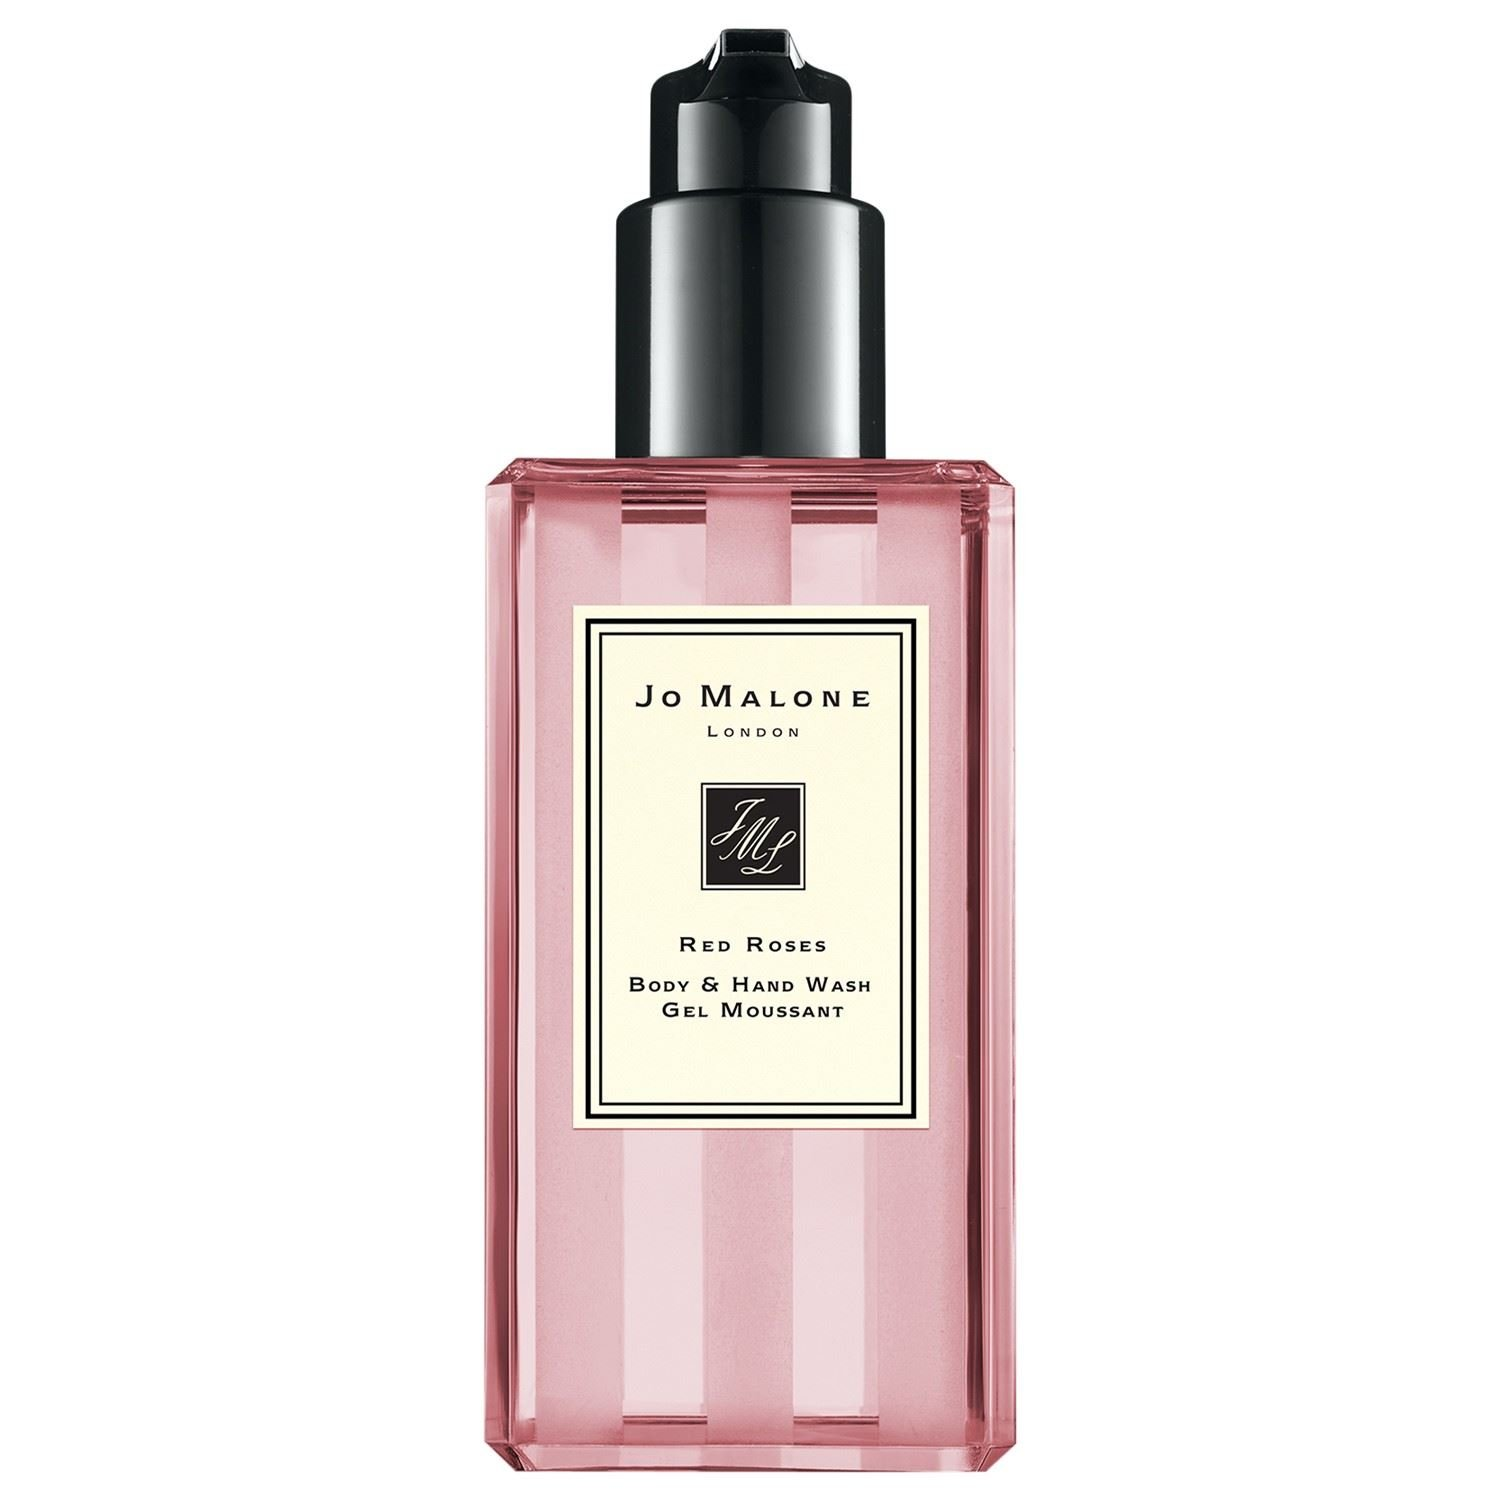 Jo Malone London Red Roses Body & Hand Wash 250ml (PACK OF 4)